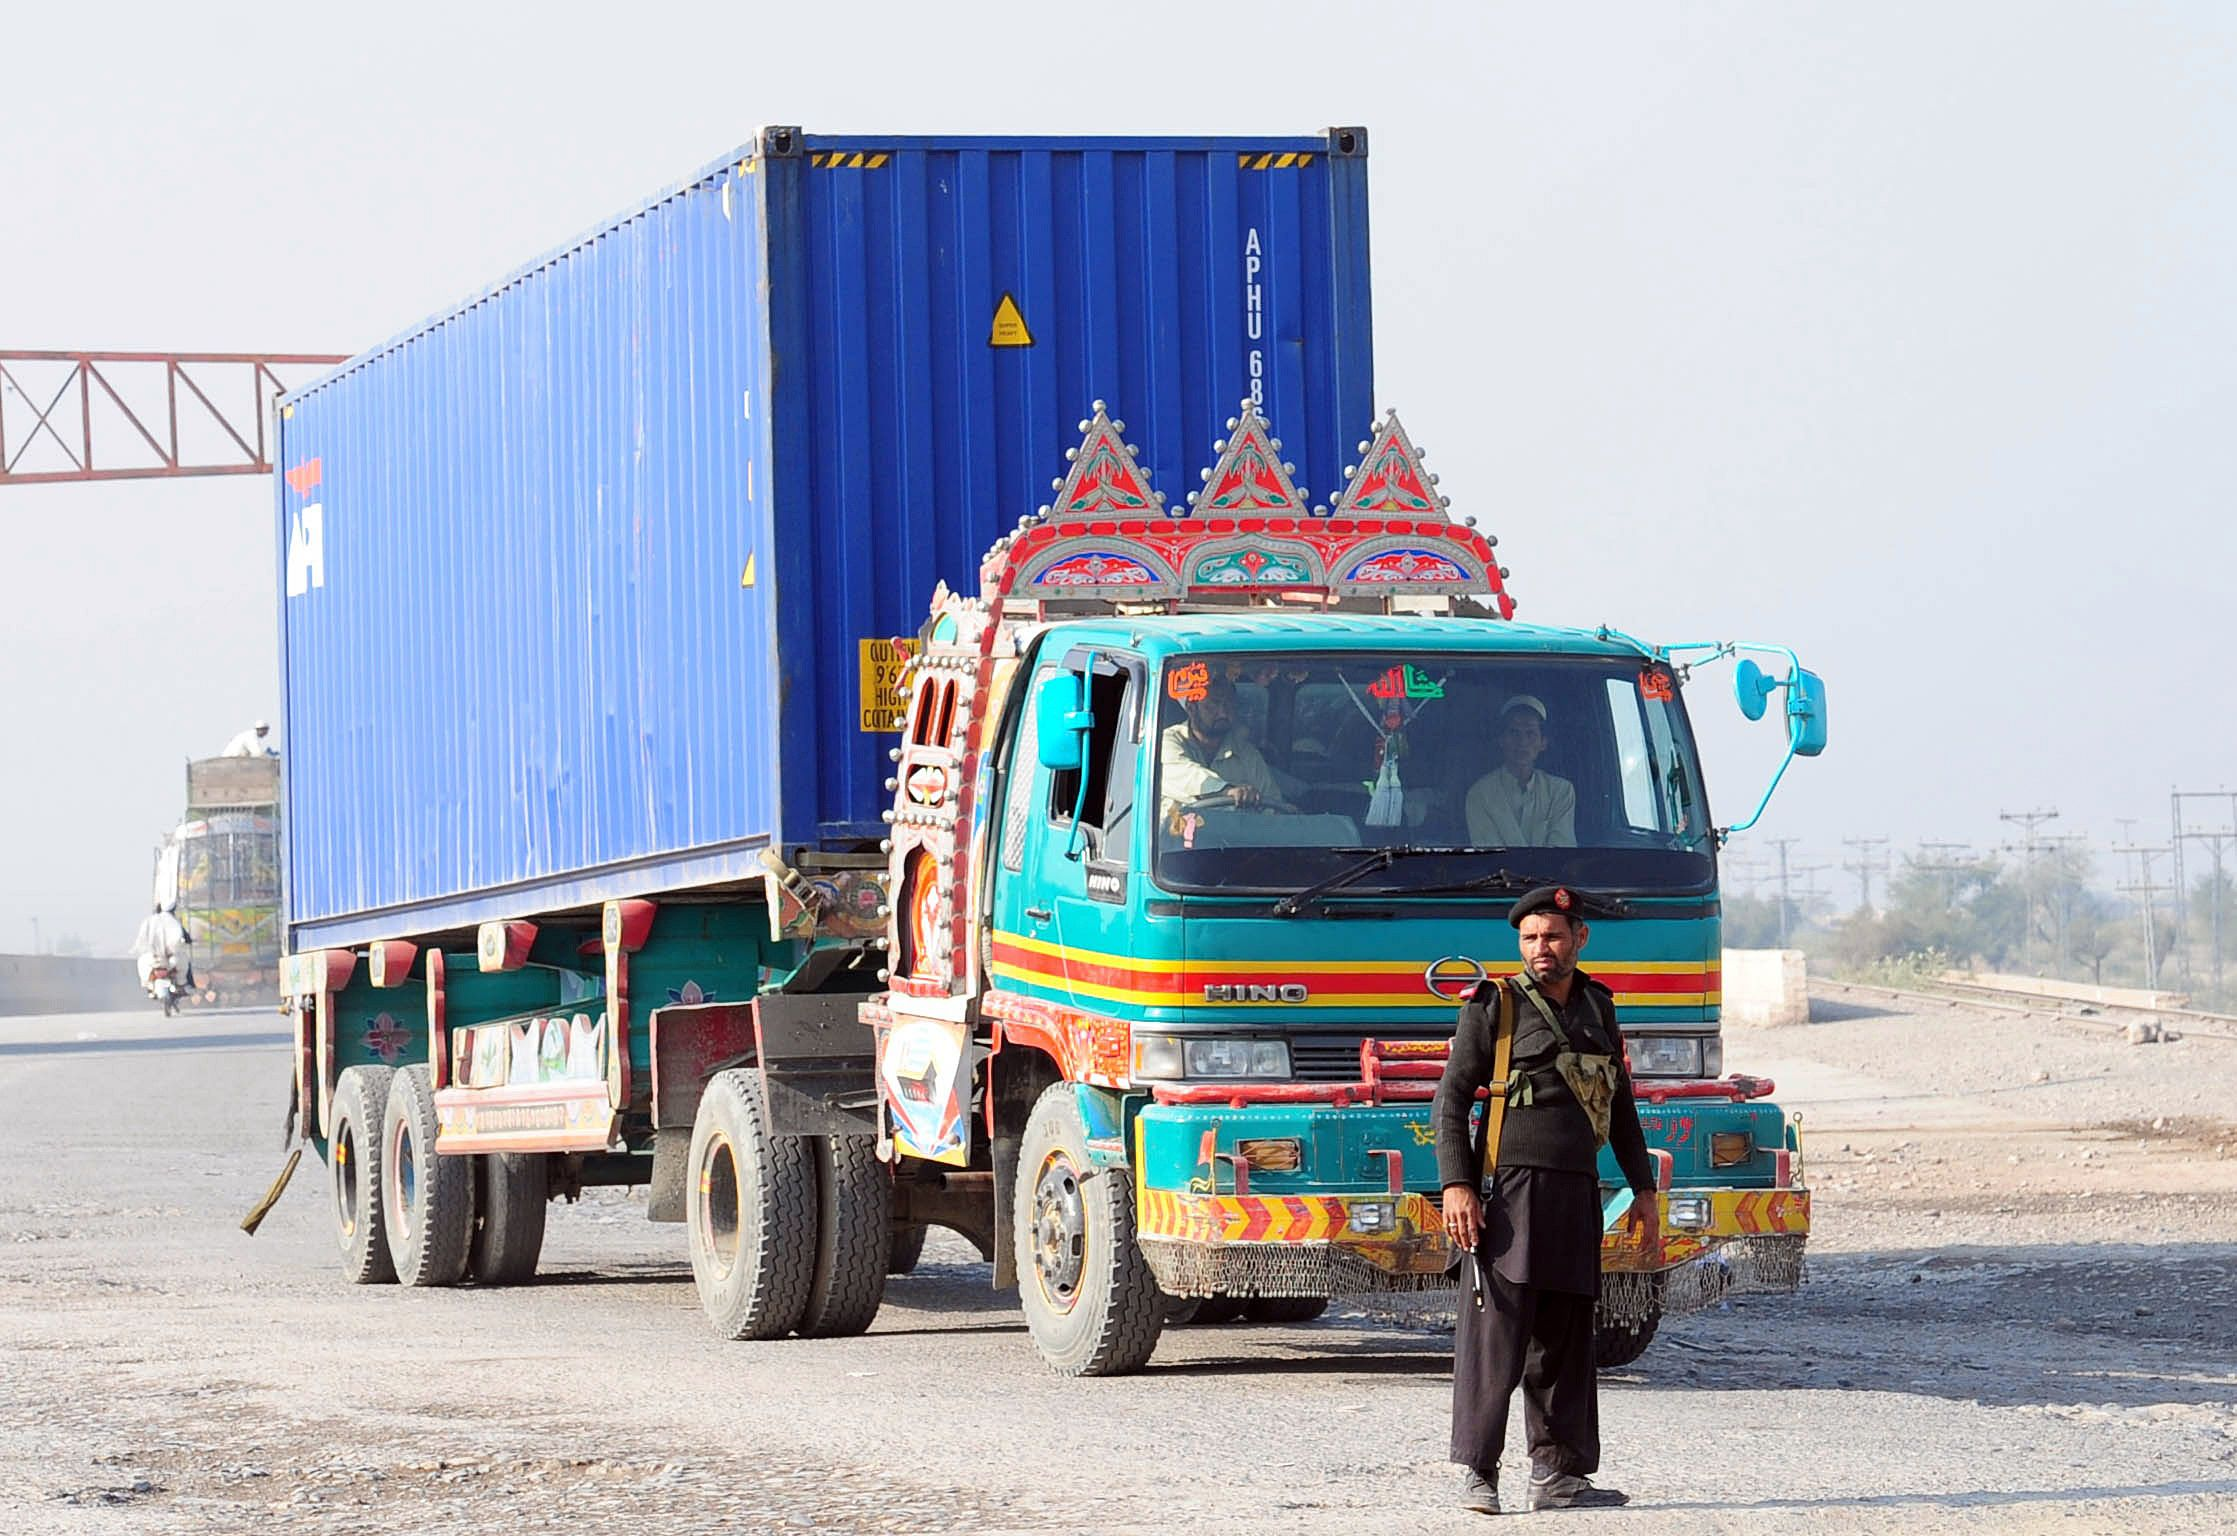 Pakistani truck driver goes to Kabul airport to see 'action', ends up in USA